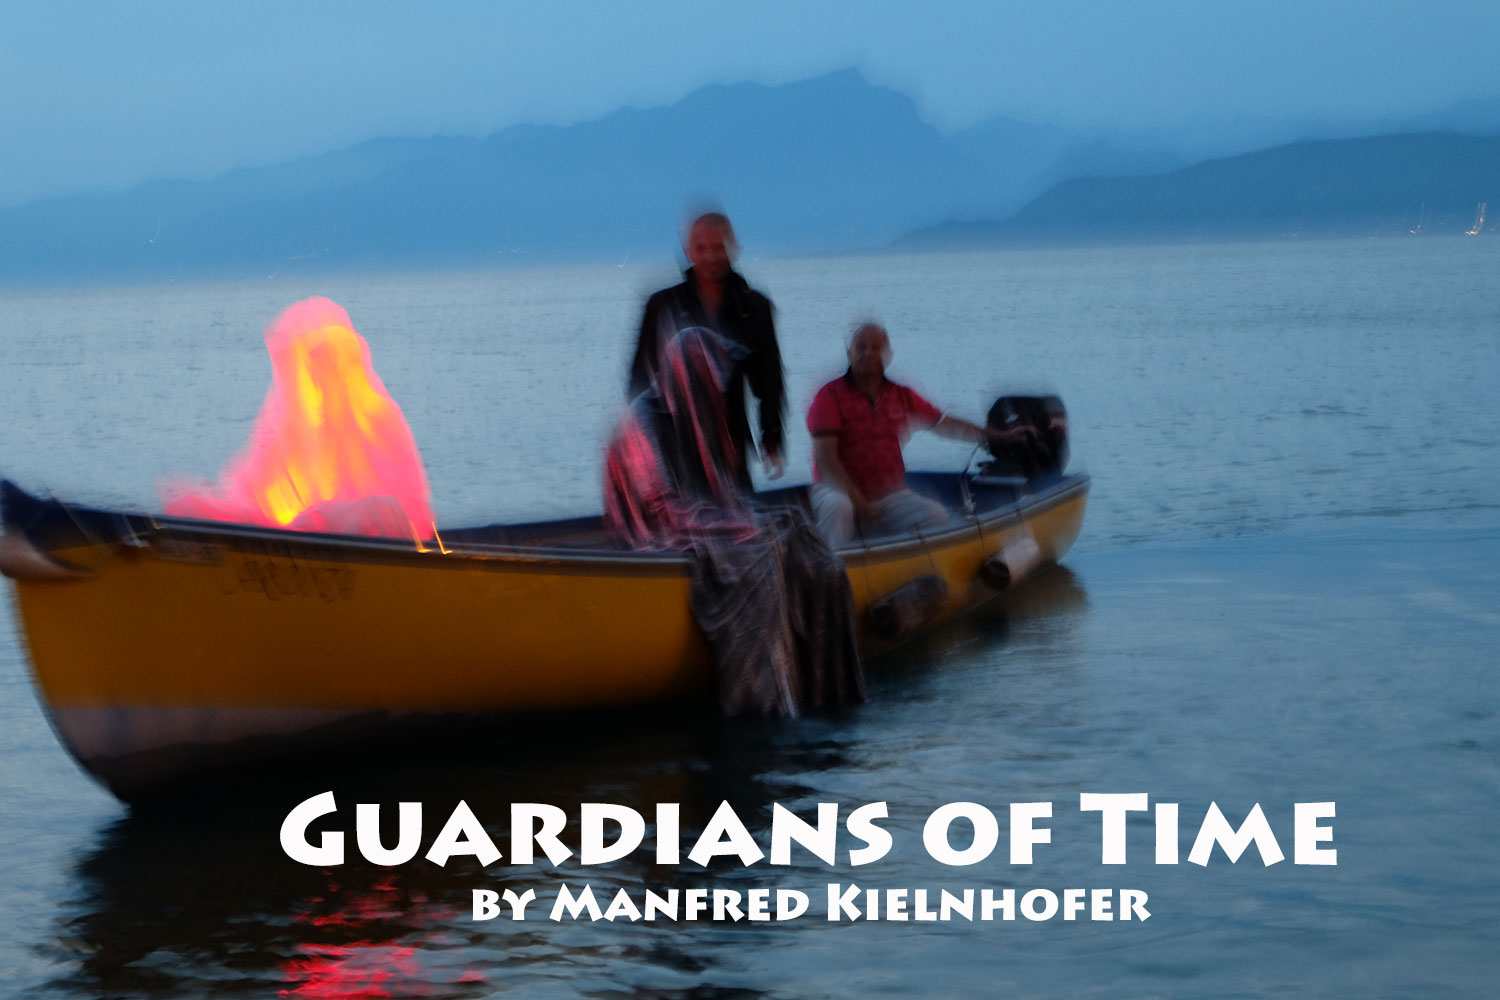 lazise-largo-de-guarda-italia--kouba-designkooperative-austria-guardians-of-time-manfred-kili-kielnhofer-contemporary-art-design-arts-arte-sculpture-theater-foto-film-performnce-avalon-ferryman-3801